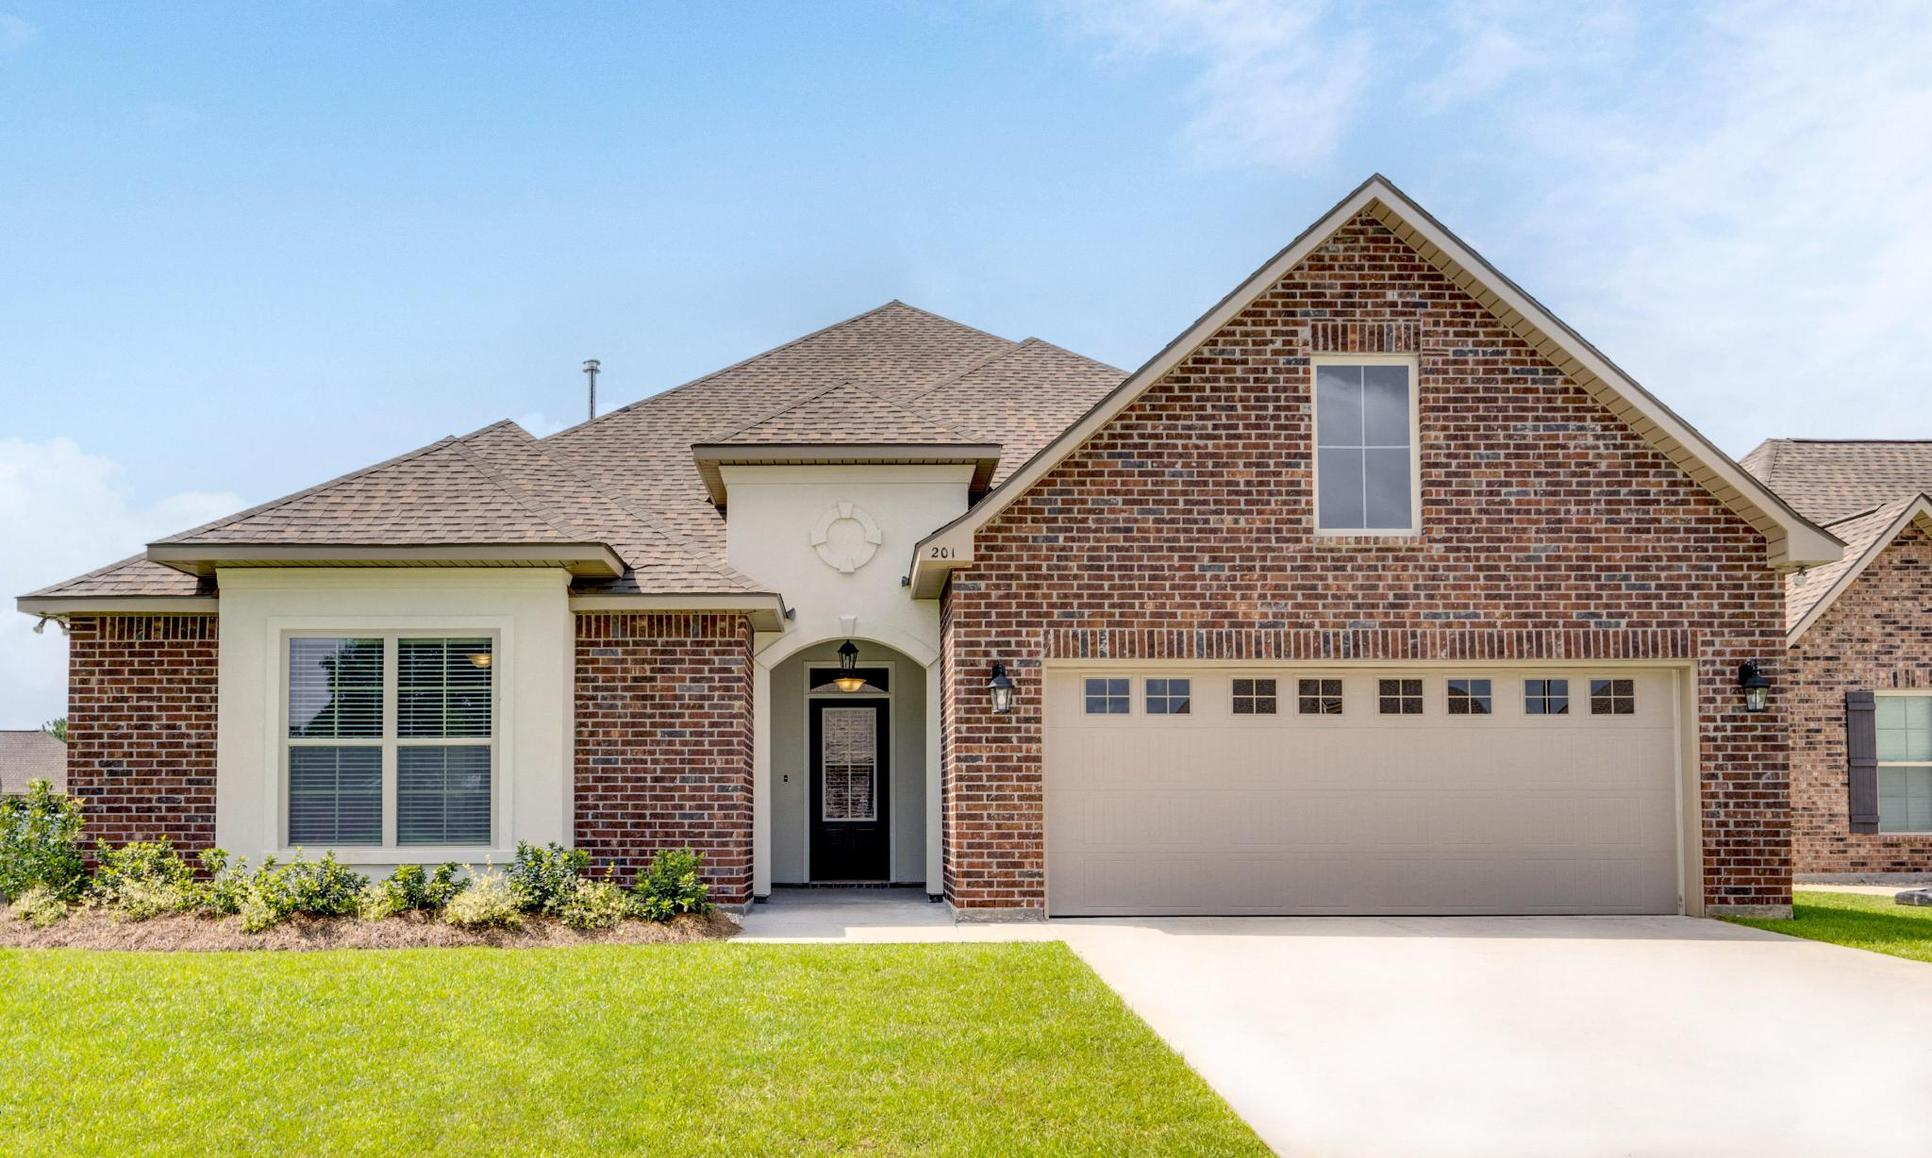 Front of Home- Brick- Stucco- arch- front loading garage- DSLD Homes- Lafayette area - Lafayette-...:Front of Home The Estates at Moss Bluff Model Home